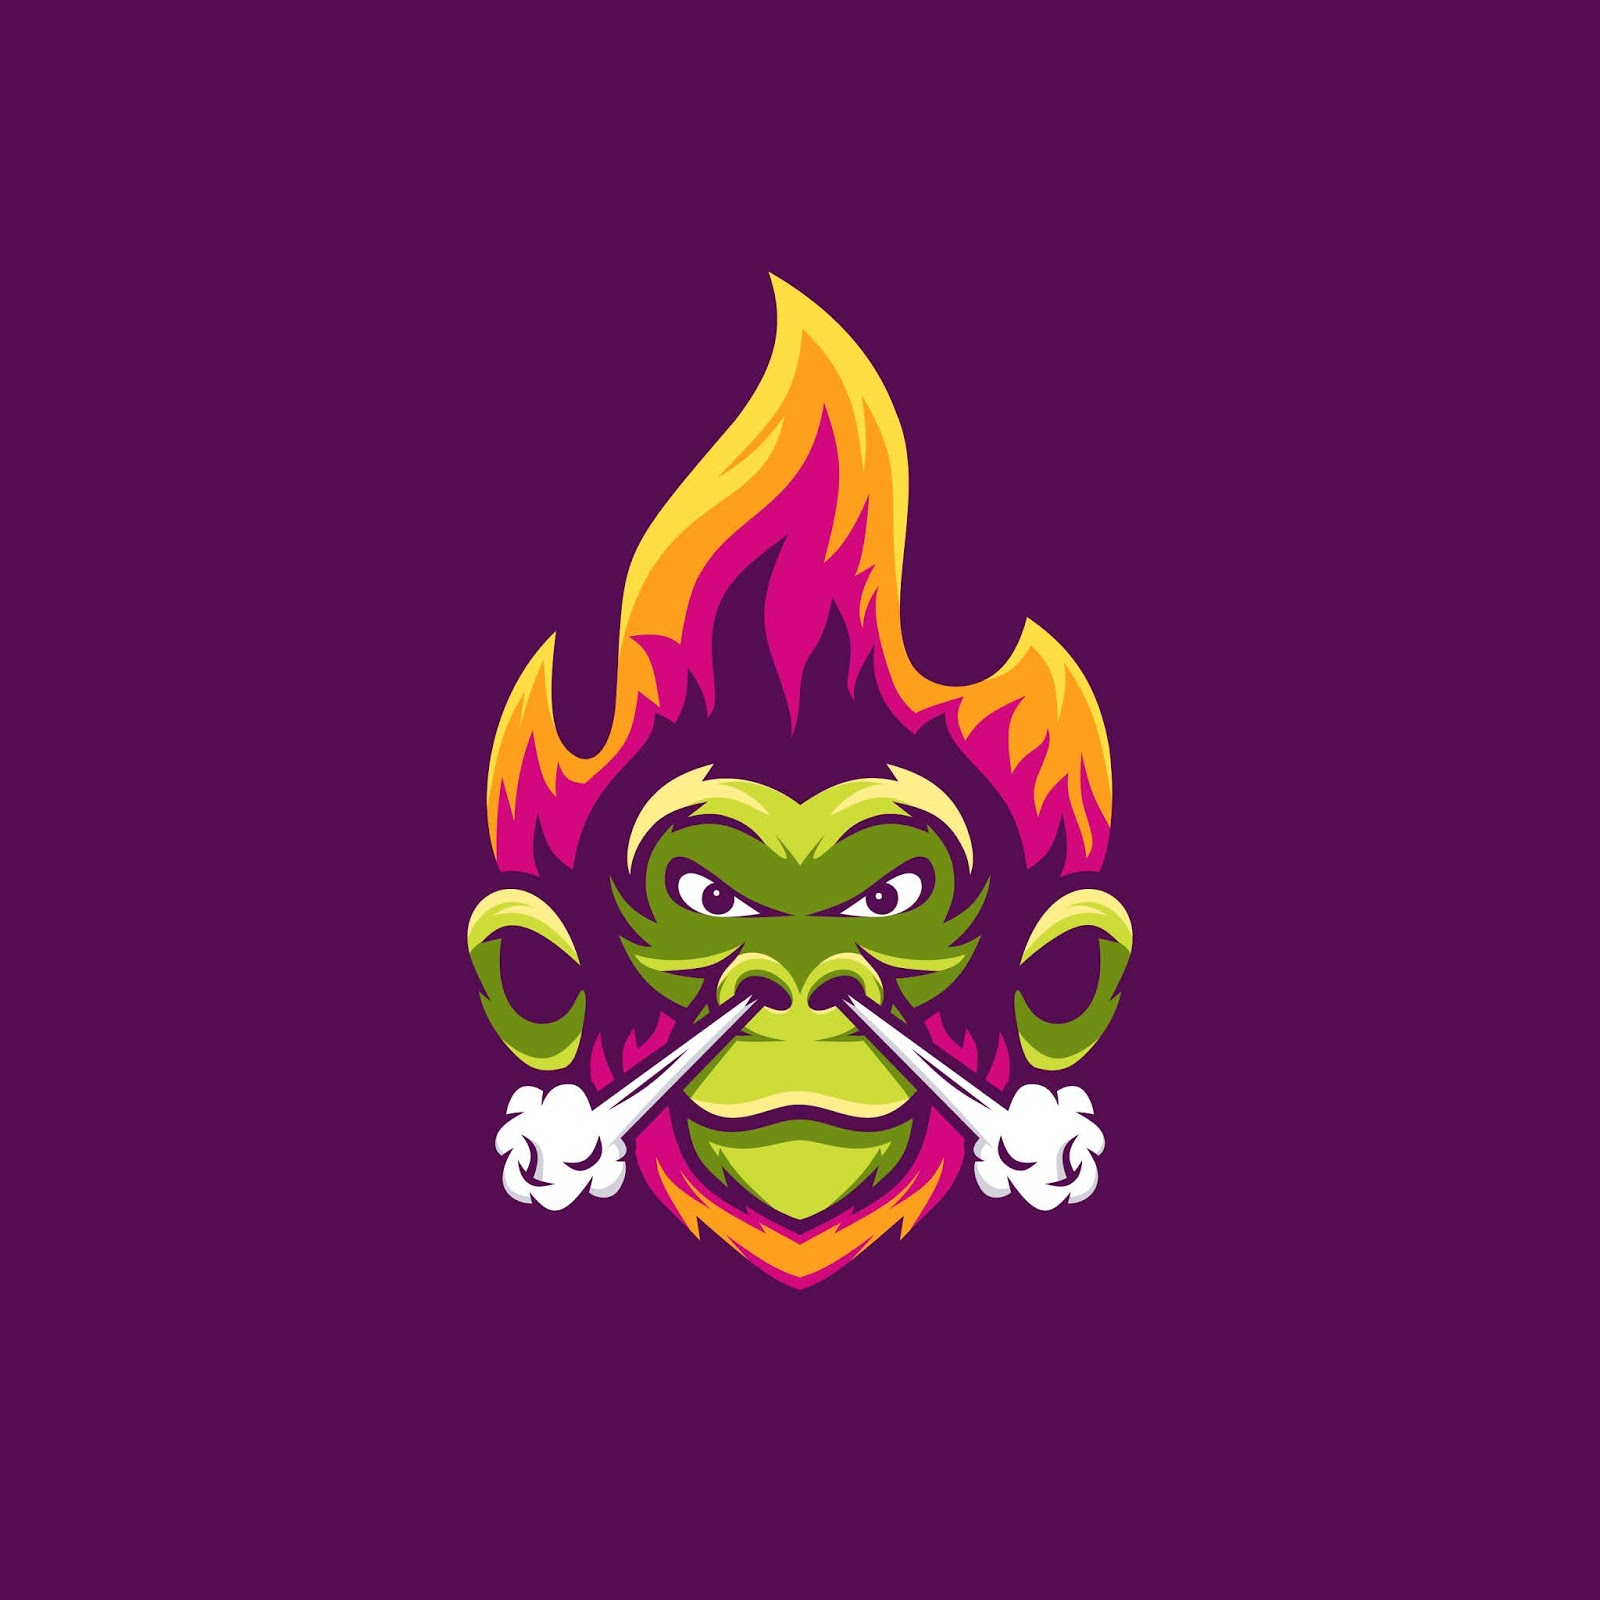 Monkey With Fire Smoke Illustration Awesome Free Download Vector CDR, AI, EPS and PNG Formats